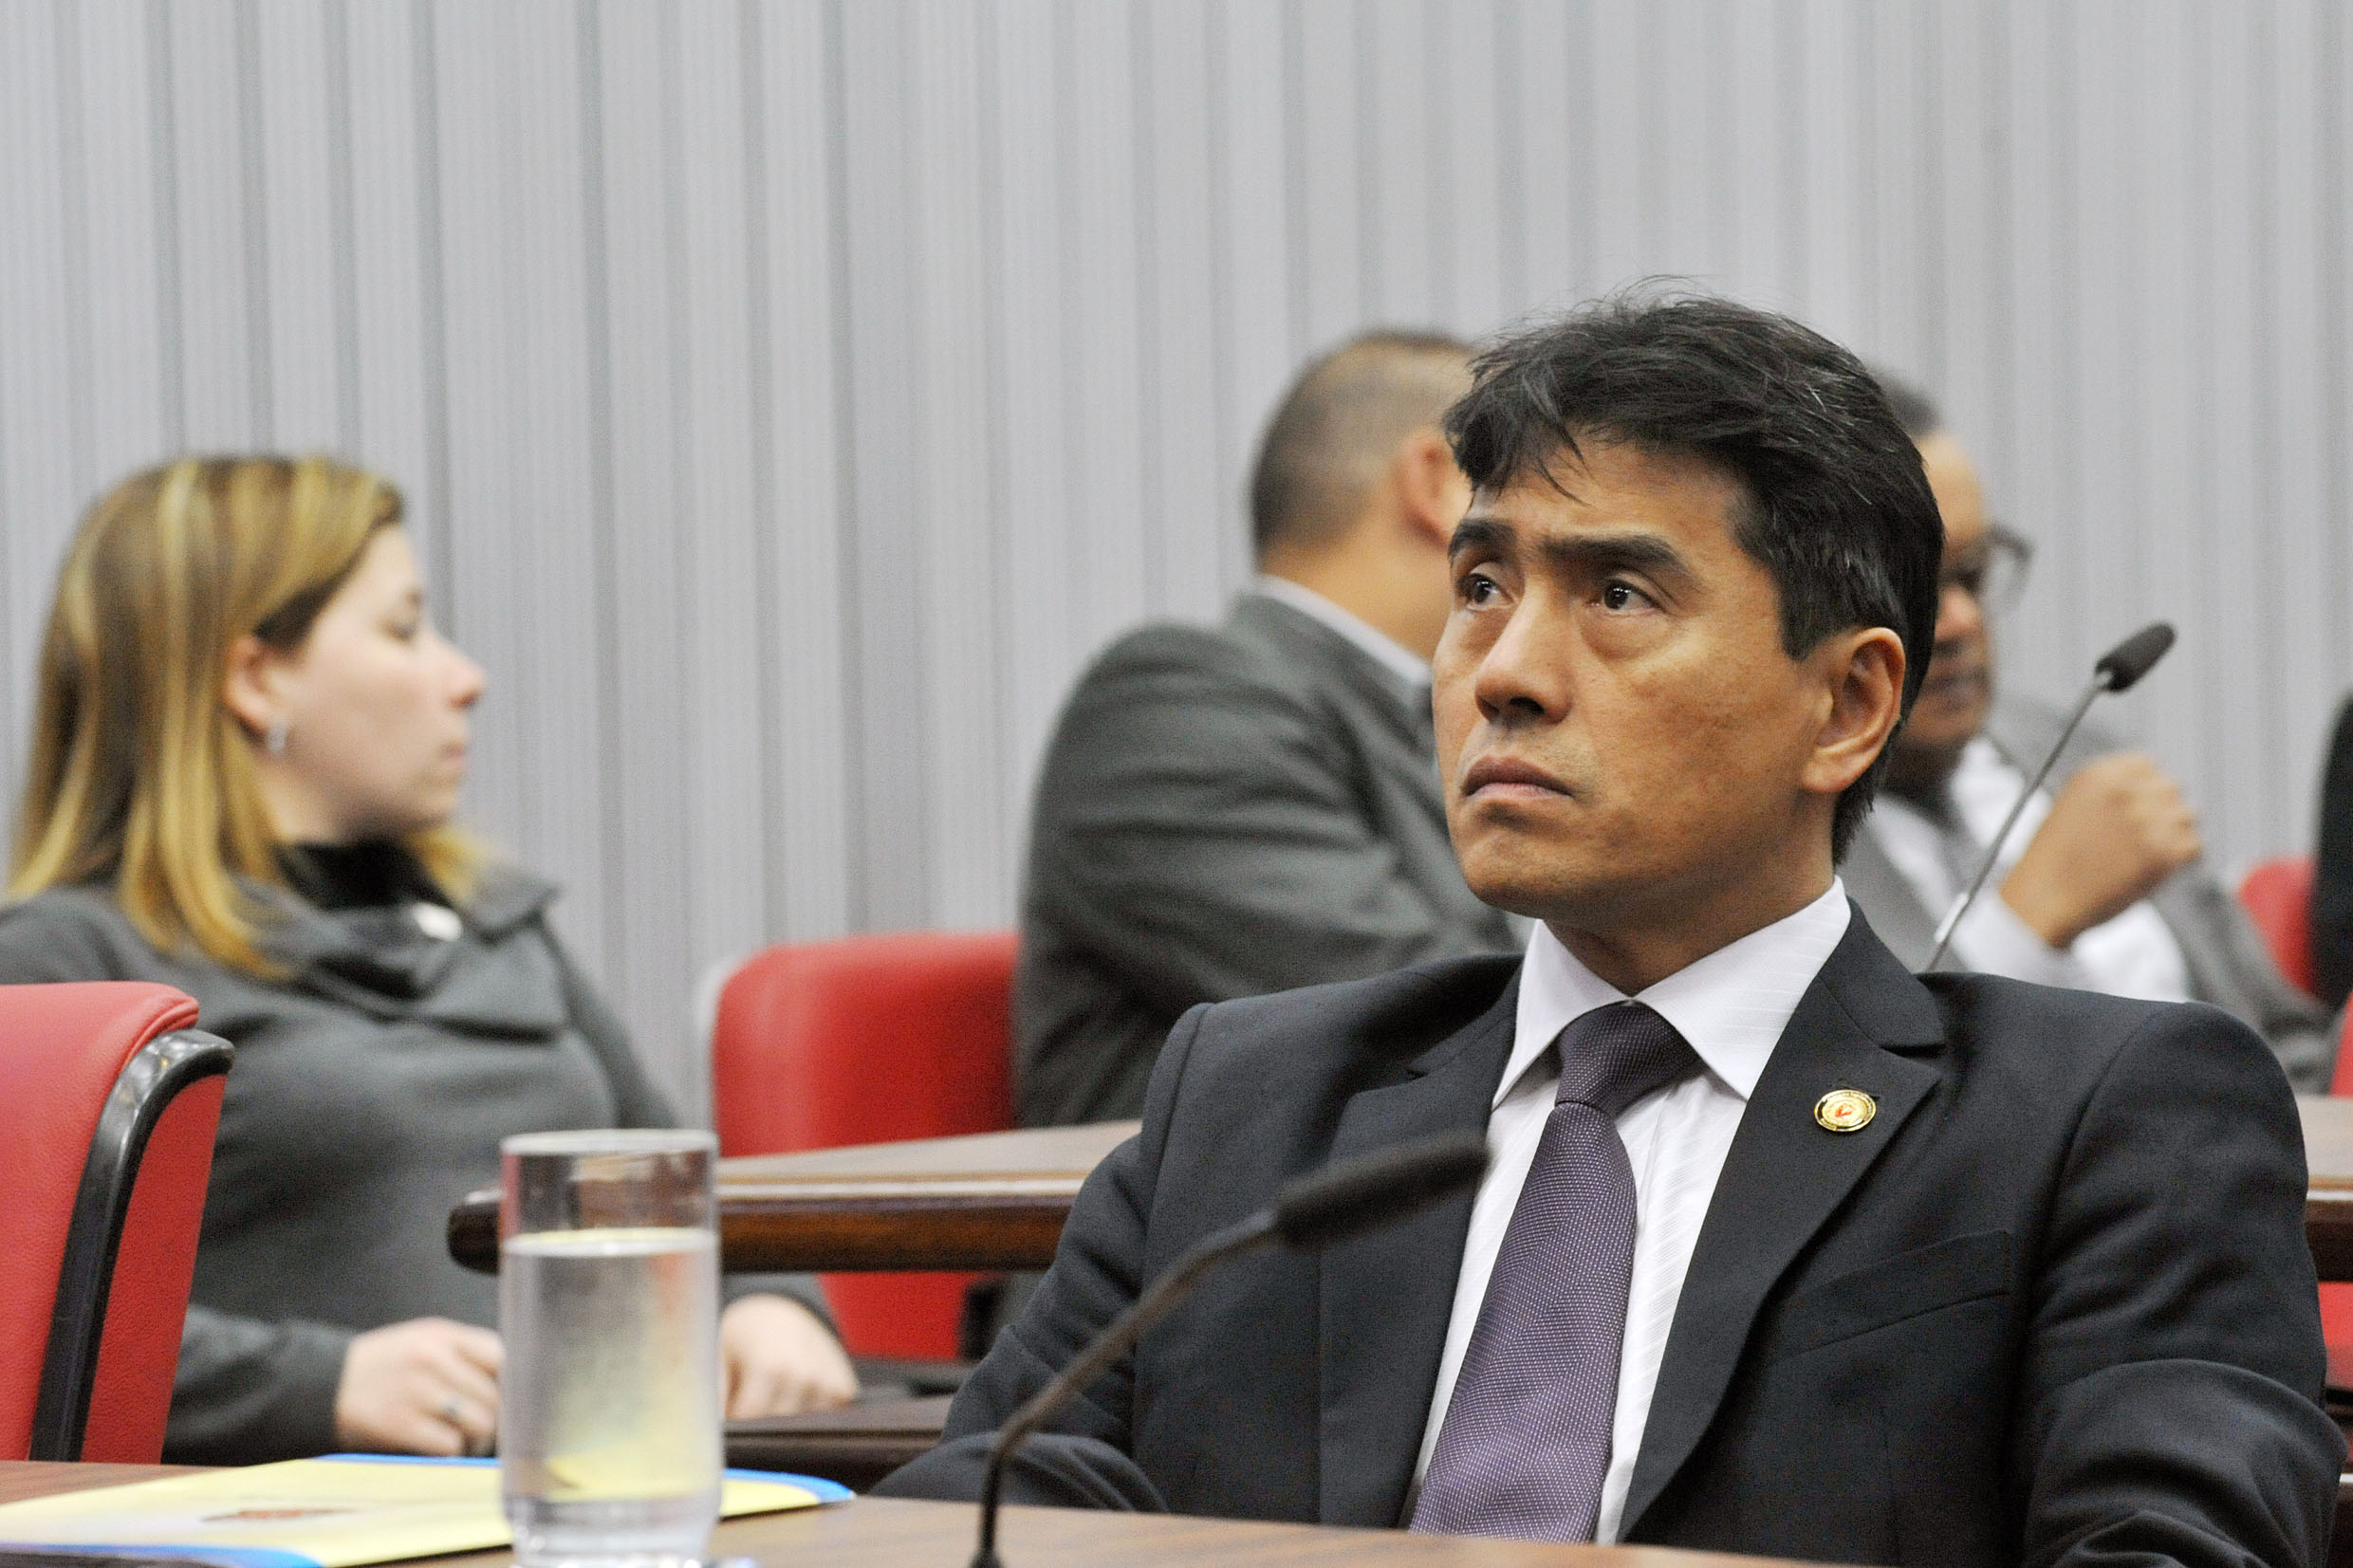 Hélio Nishimoto<a style='float:right' href='https://www3.al.sp.gov.br/repositorio/noticia/N-06-2014/fg163617.jpg' target=_blank><img src='/_img/material-file-download-white.png' width='14px' alt='Clique para baixar a imagem'></a>